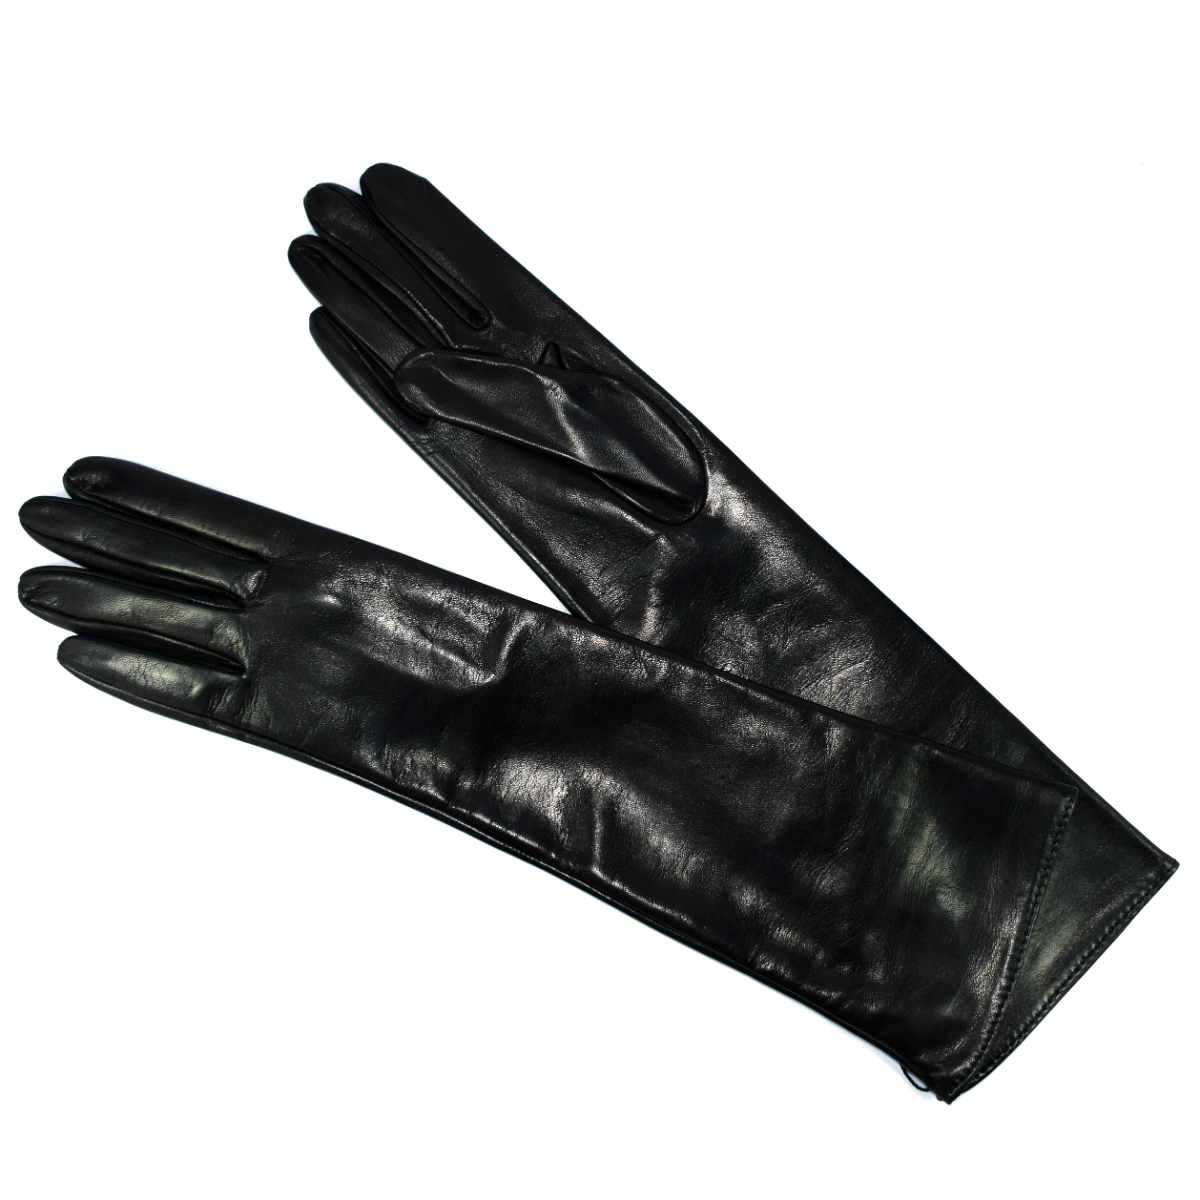 58P LONG LEATHER GLOVE by Bottega Fiorentina